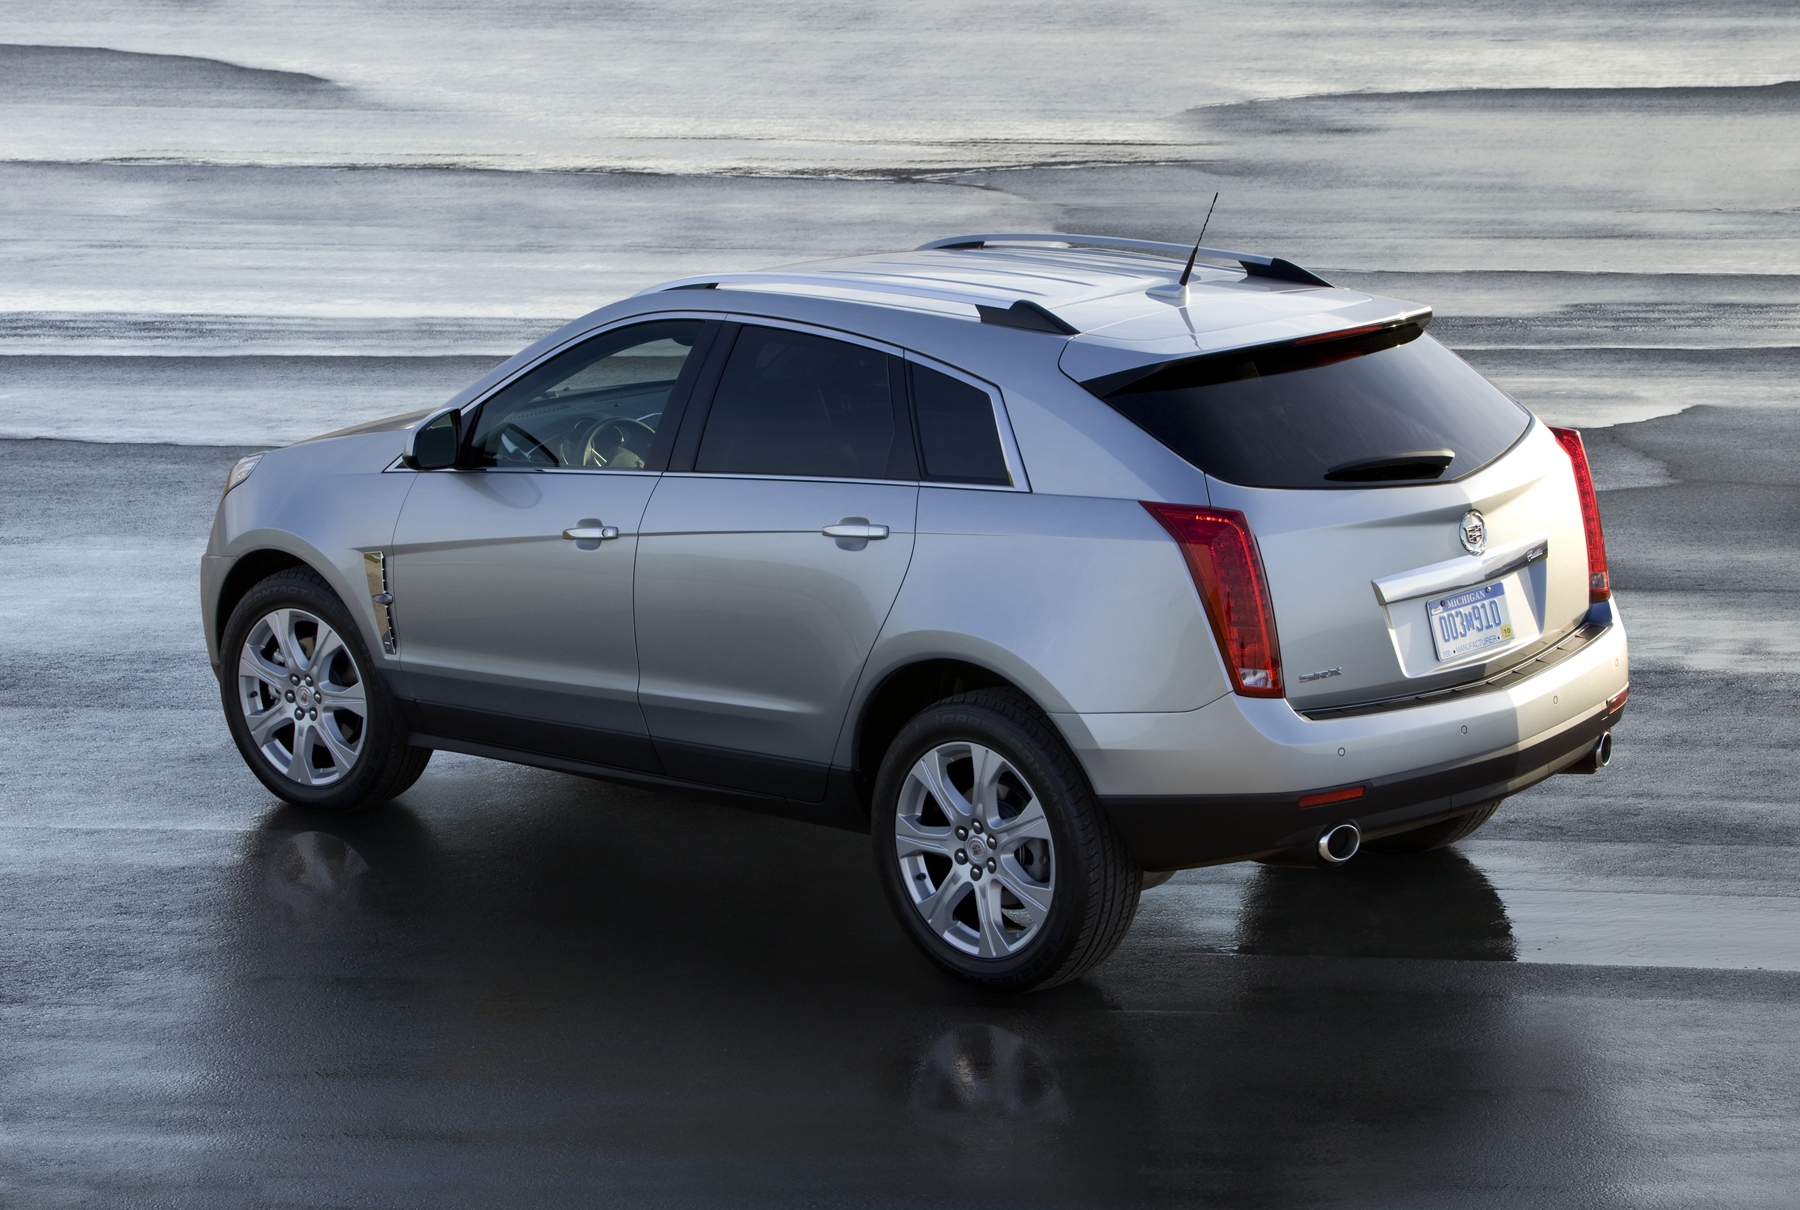 srx reviews review cadillac original photo and driver car s